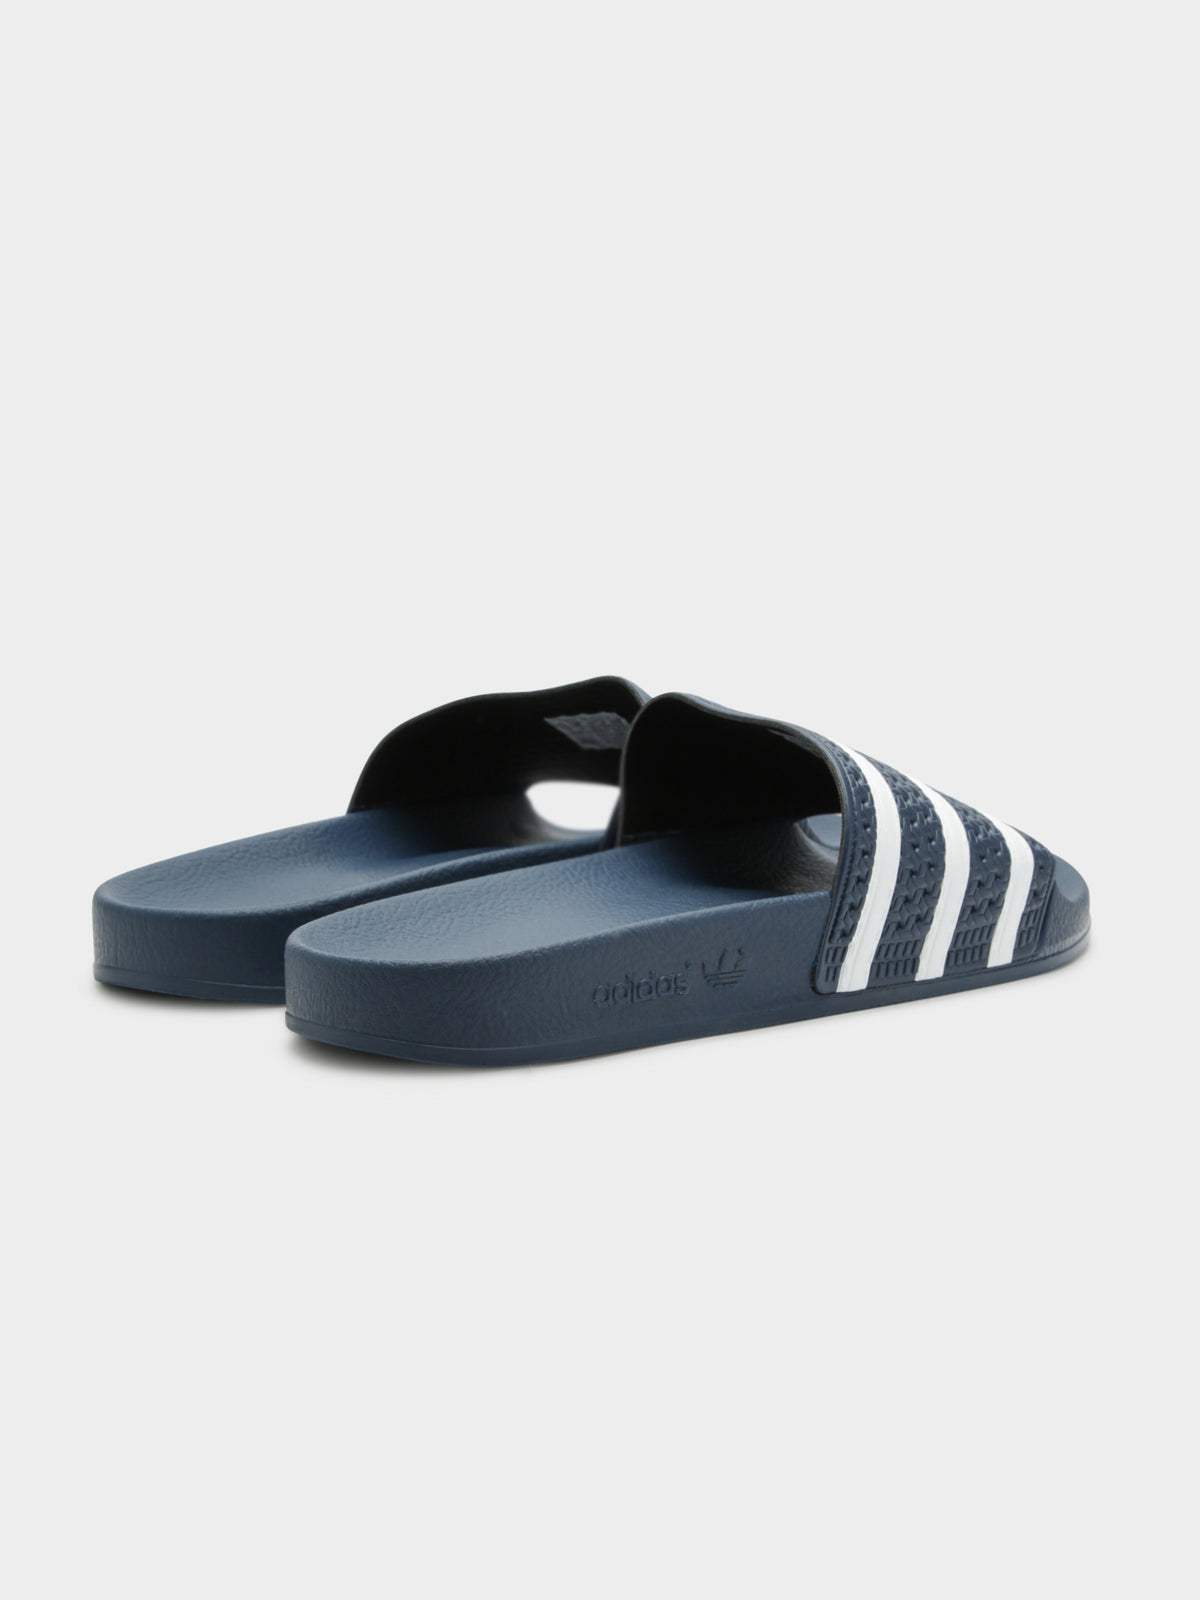 Unisex Adilette Slides in Navy and White